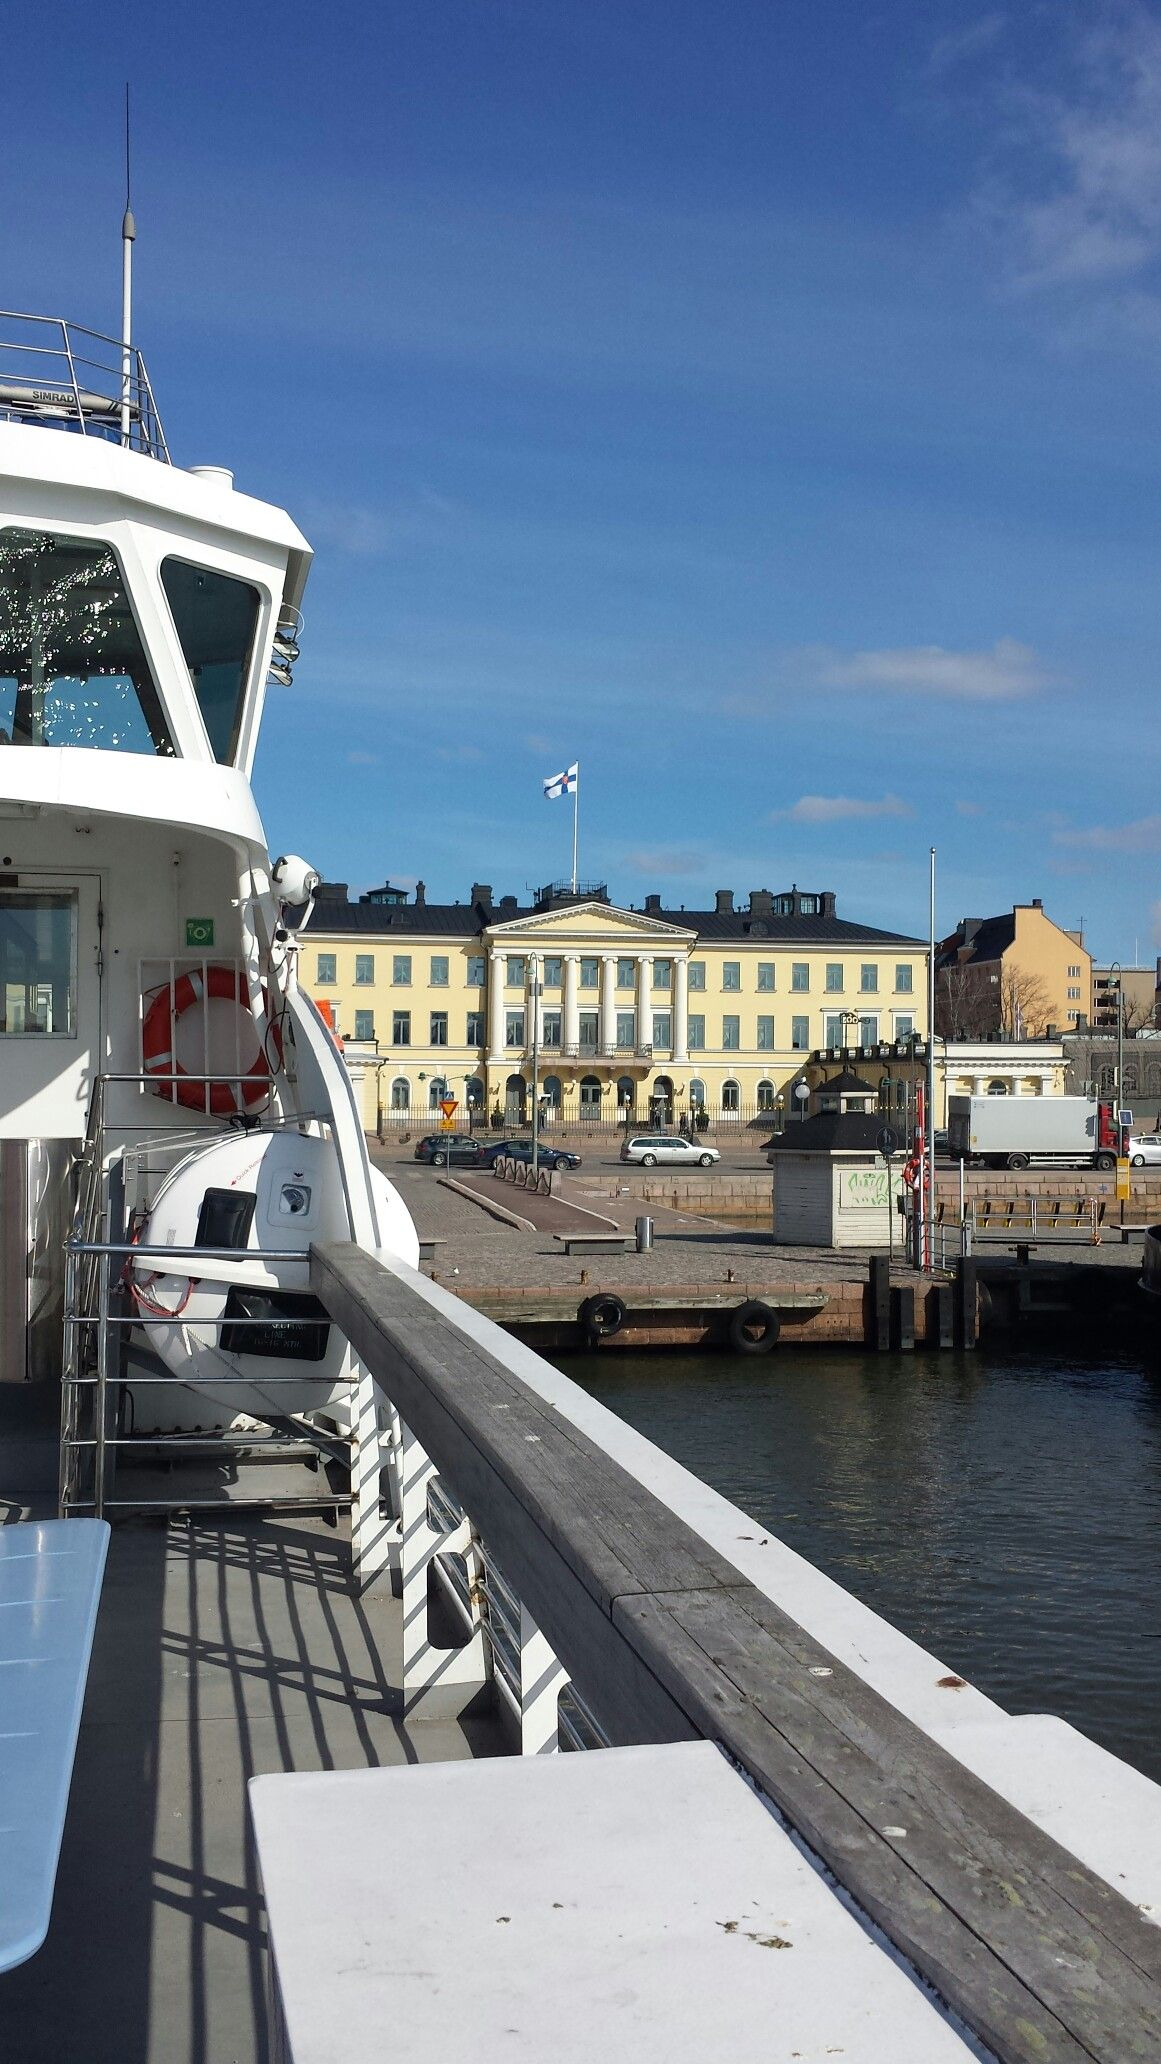 About to depart from Kauppatori to Soumenlinna.